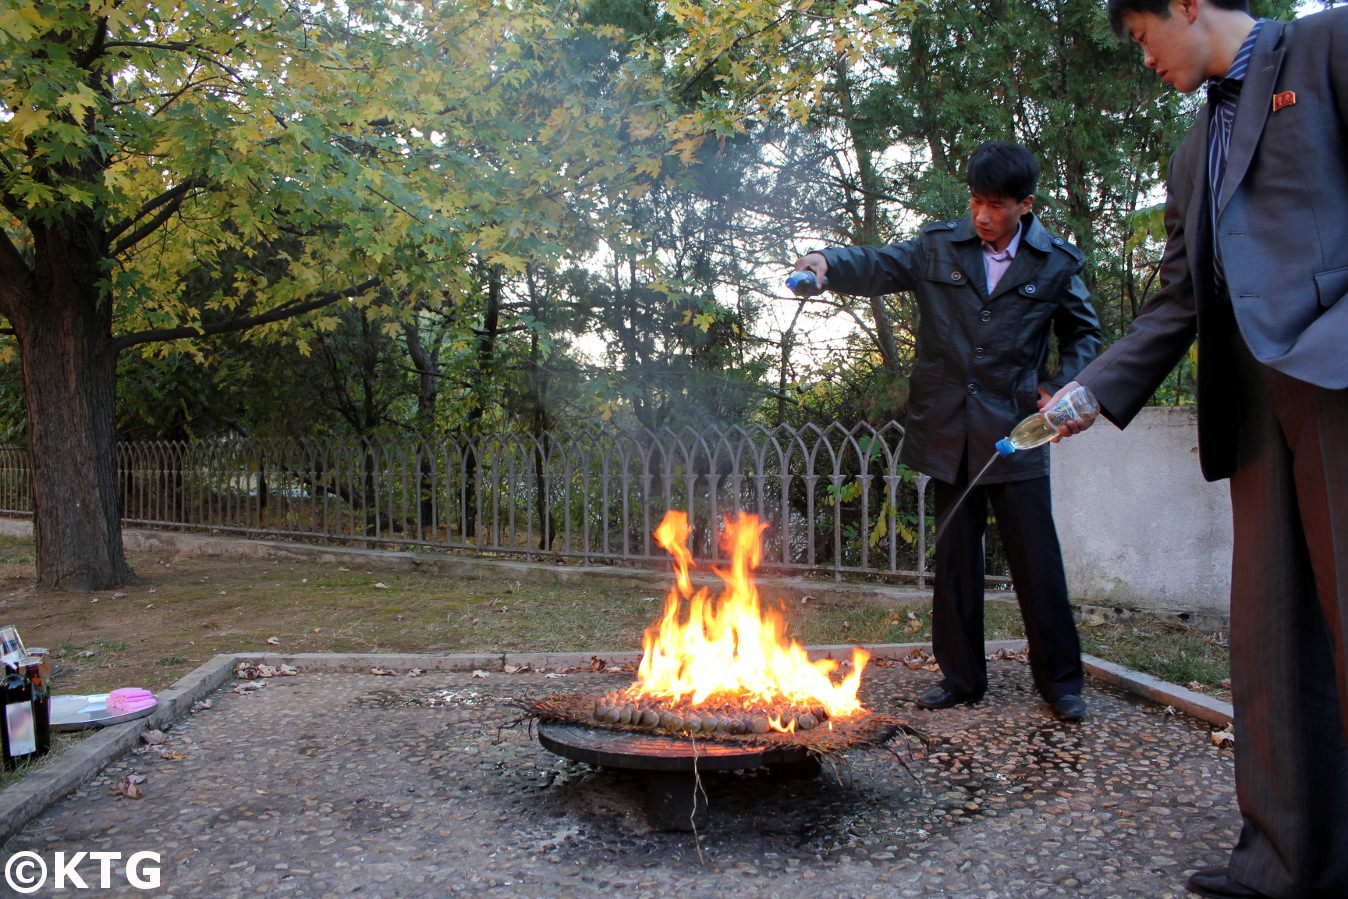 North Korean men pouring petrol over clams in order to prepare a clam barbecue. We can have a gasoline clam BBQ when staying at the Ryonggang Hot Spa Hotel in Onchon county near Nampo city on the west coast of North Korea, DPRK. Trip arranged by KTG Tours